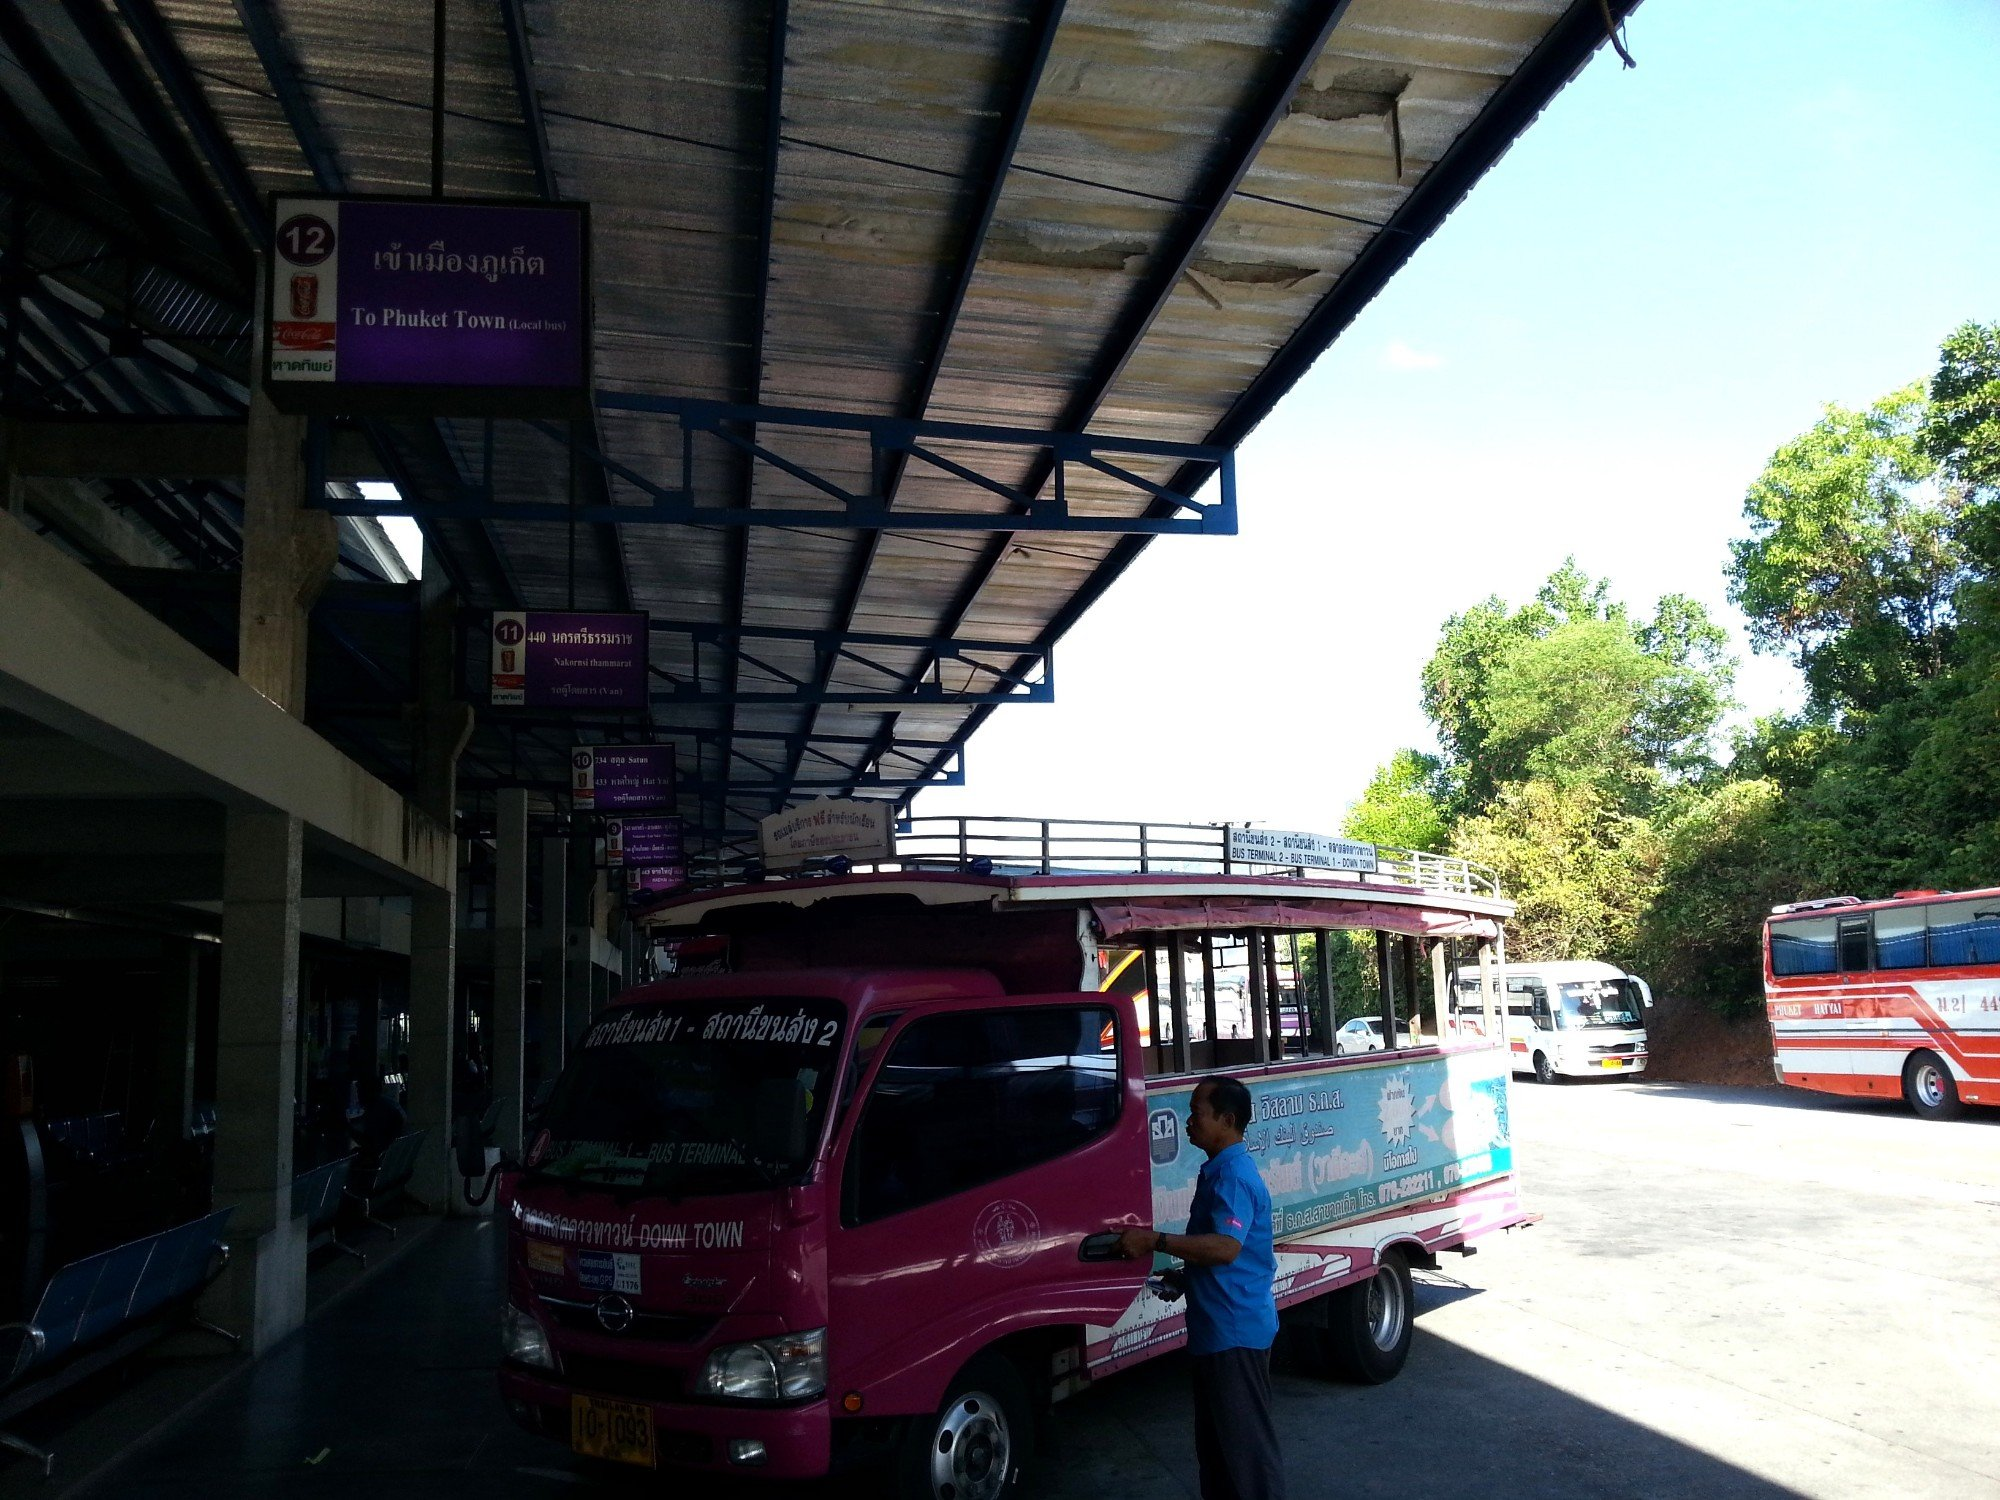 Pink shared taxi at Phuket Bus Terminal 2